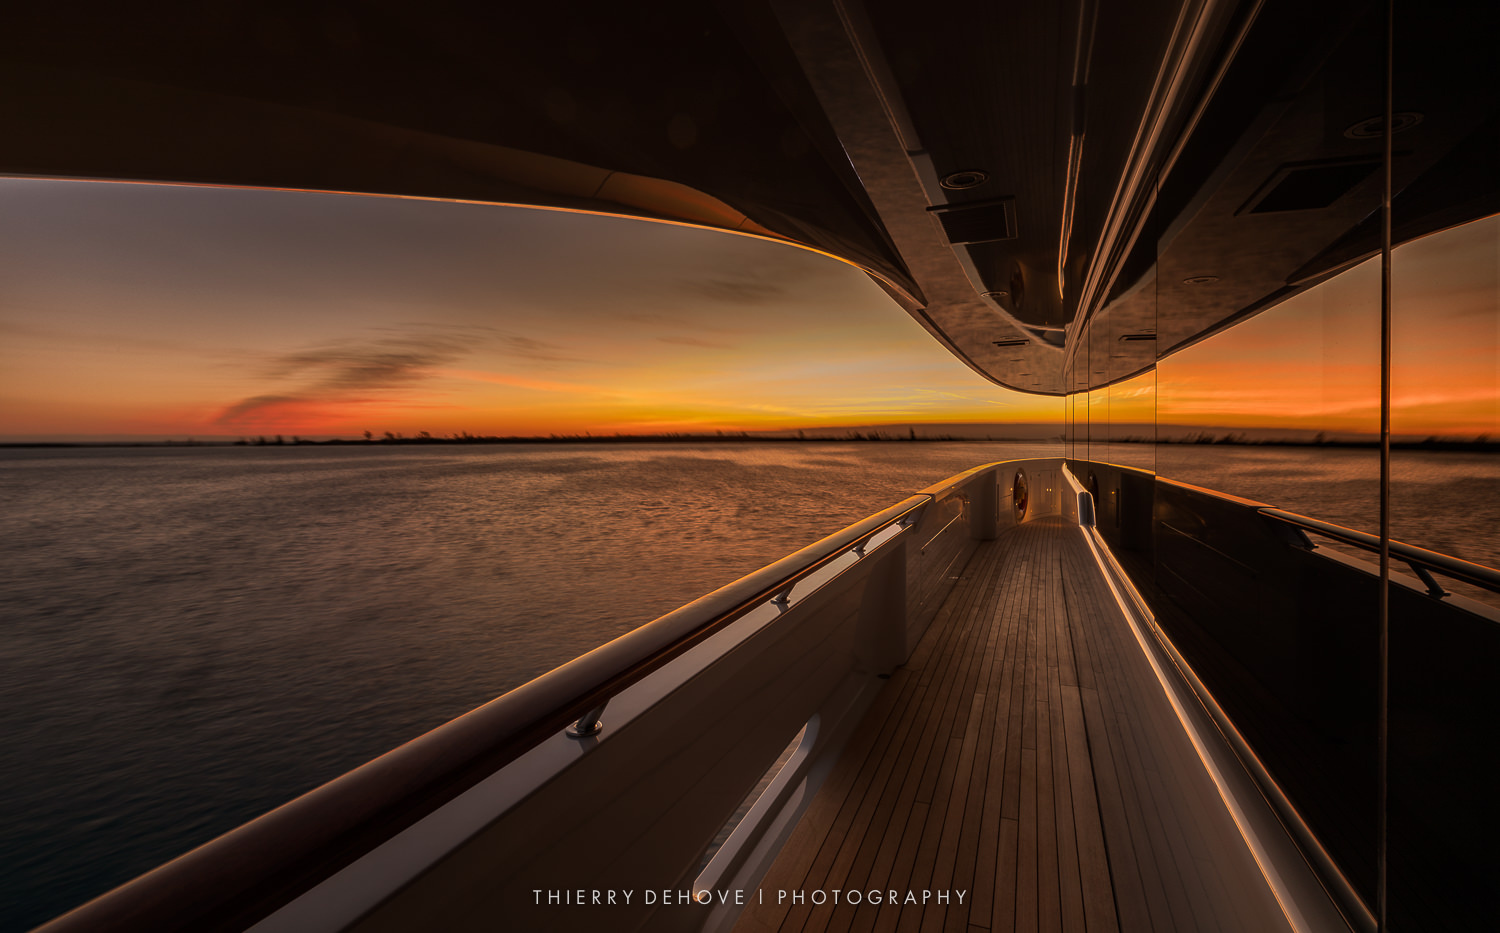 Sunset on Mega Yacht in Bahamas by Thierry Dehove